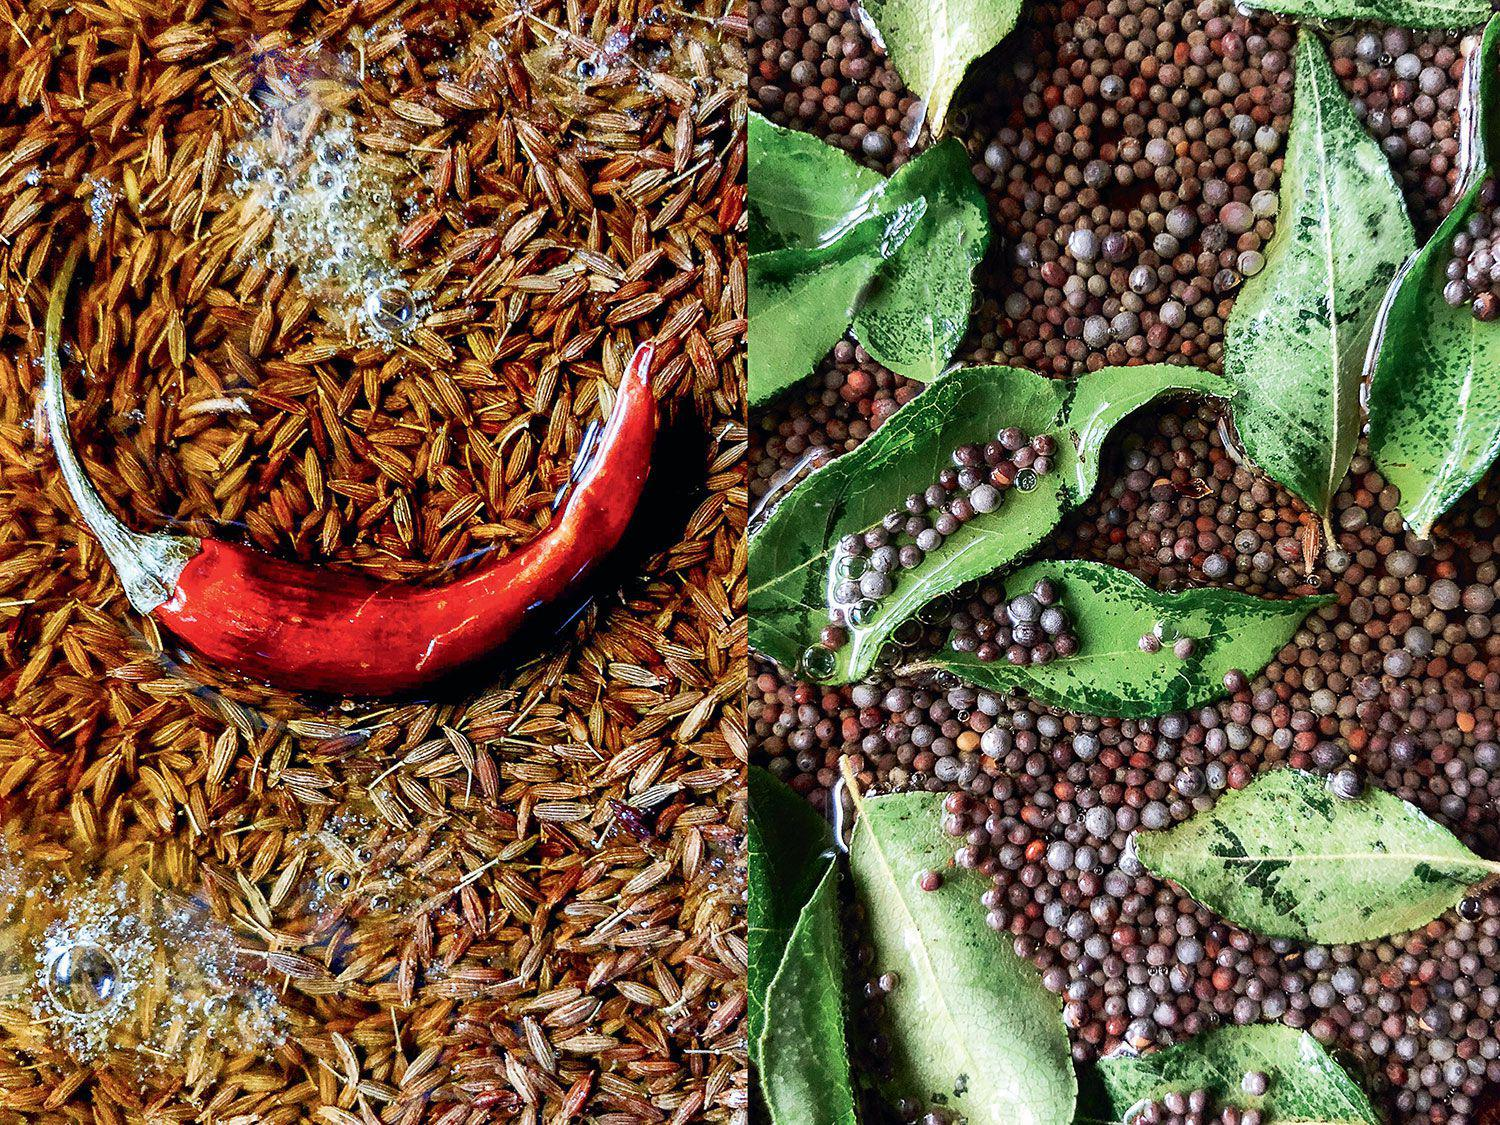 One of the simplest Indian cooking techniques to master is <em>chhonk</em>: whole spices such as cumin and chiles (left) or black mustard seeds and curry leaves (right) sizzled in oil or ghee until fragrant.